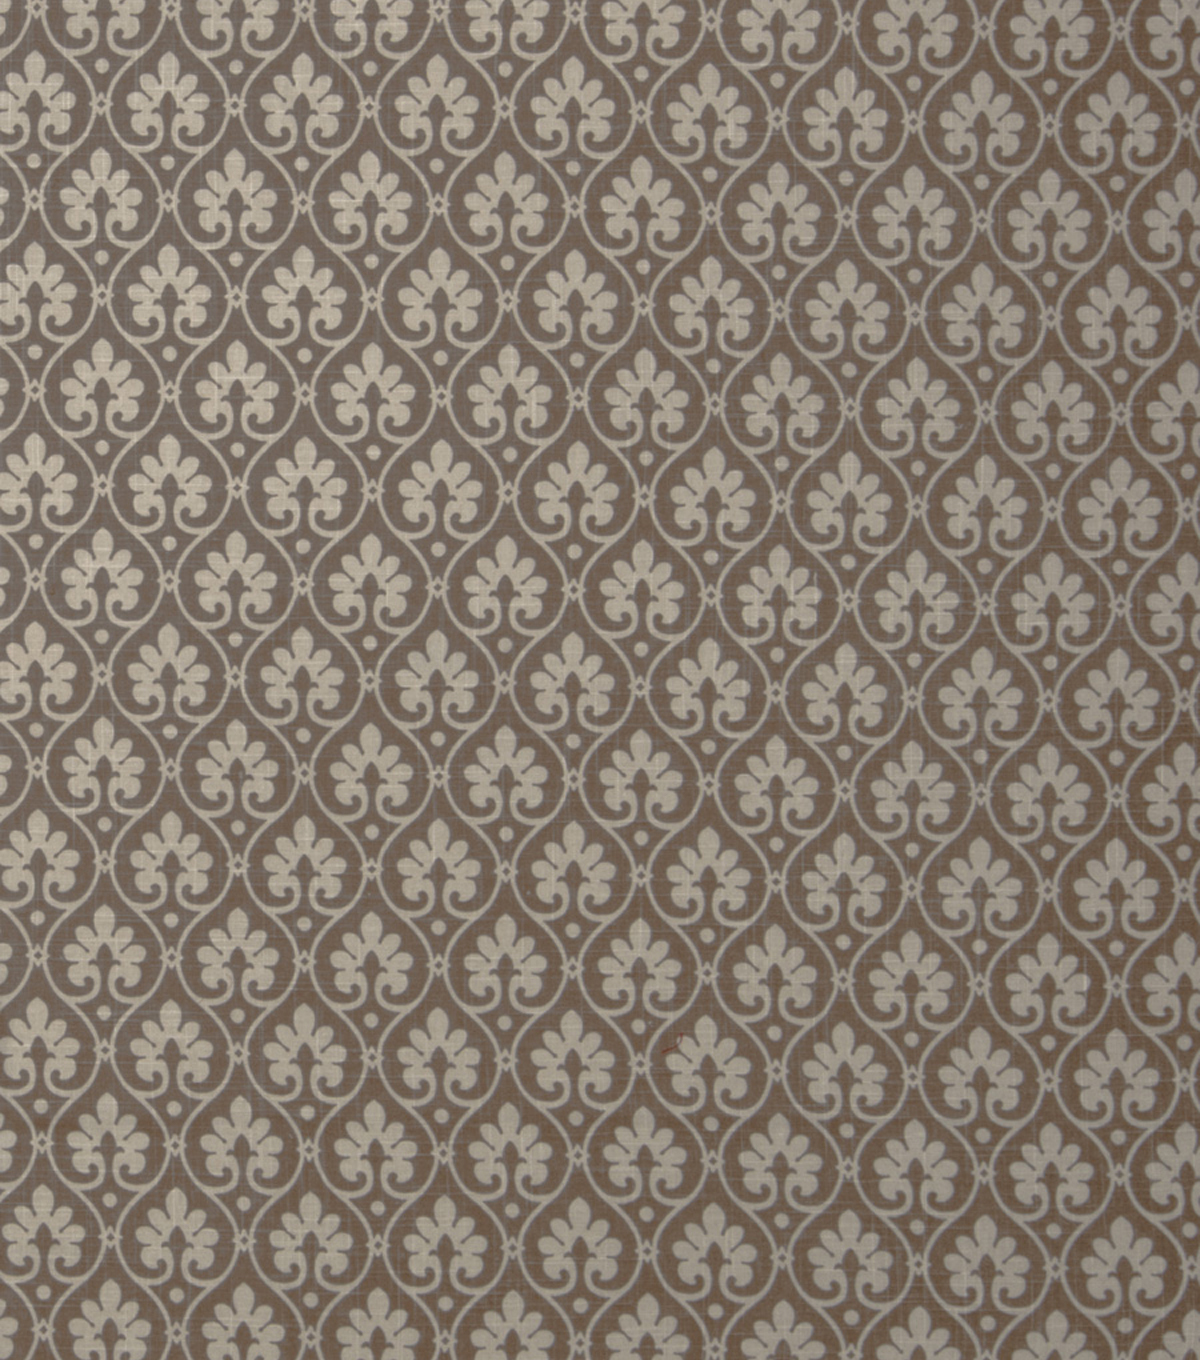 Home Decor 8\u0022x8\u0022 Fabric Swatch-SMC Designs Eugene / Chestnut